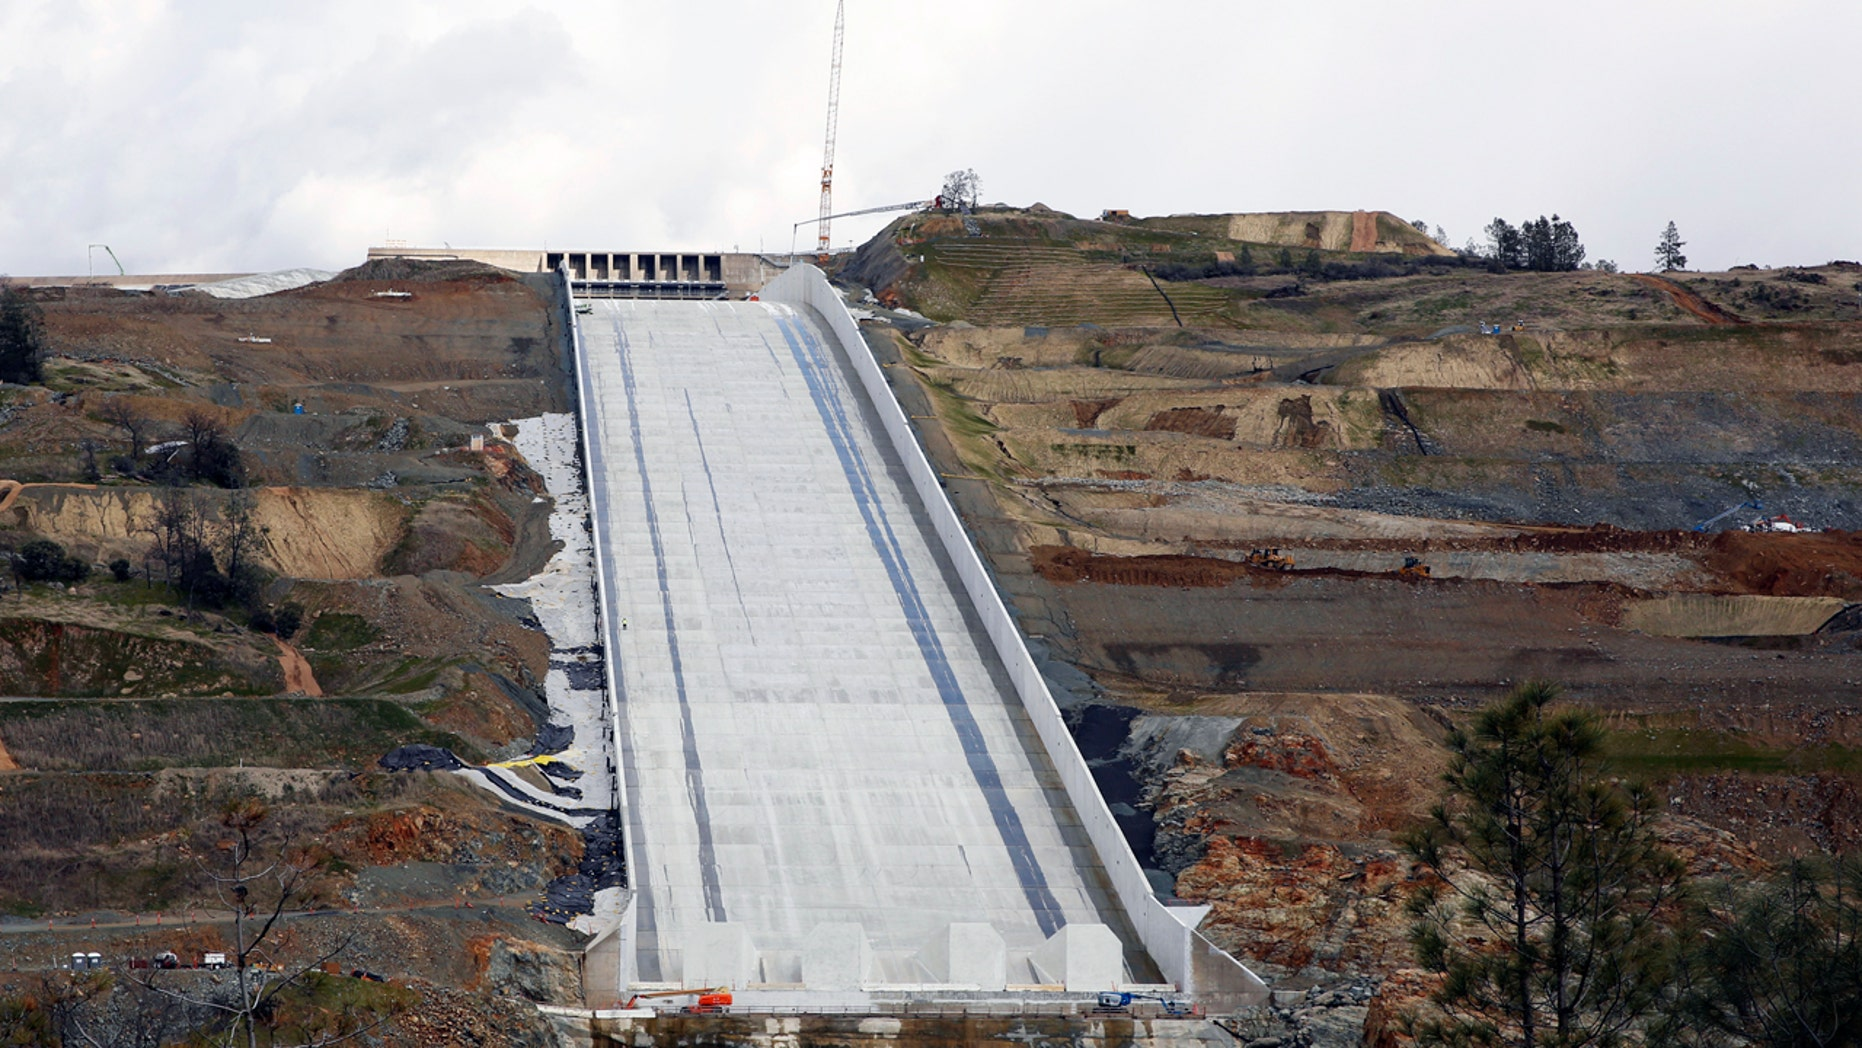 Water flows down California dam's rebuilt spillway after